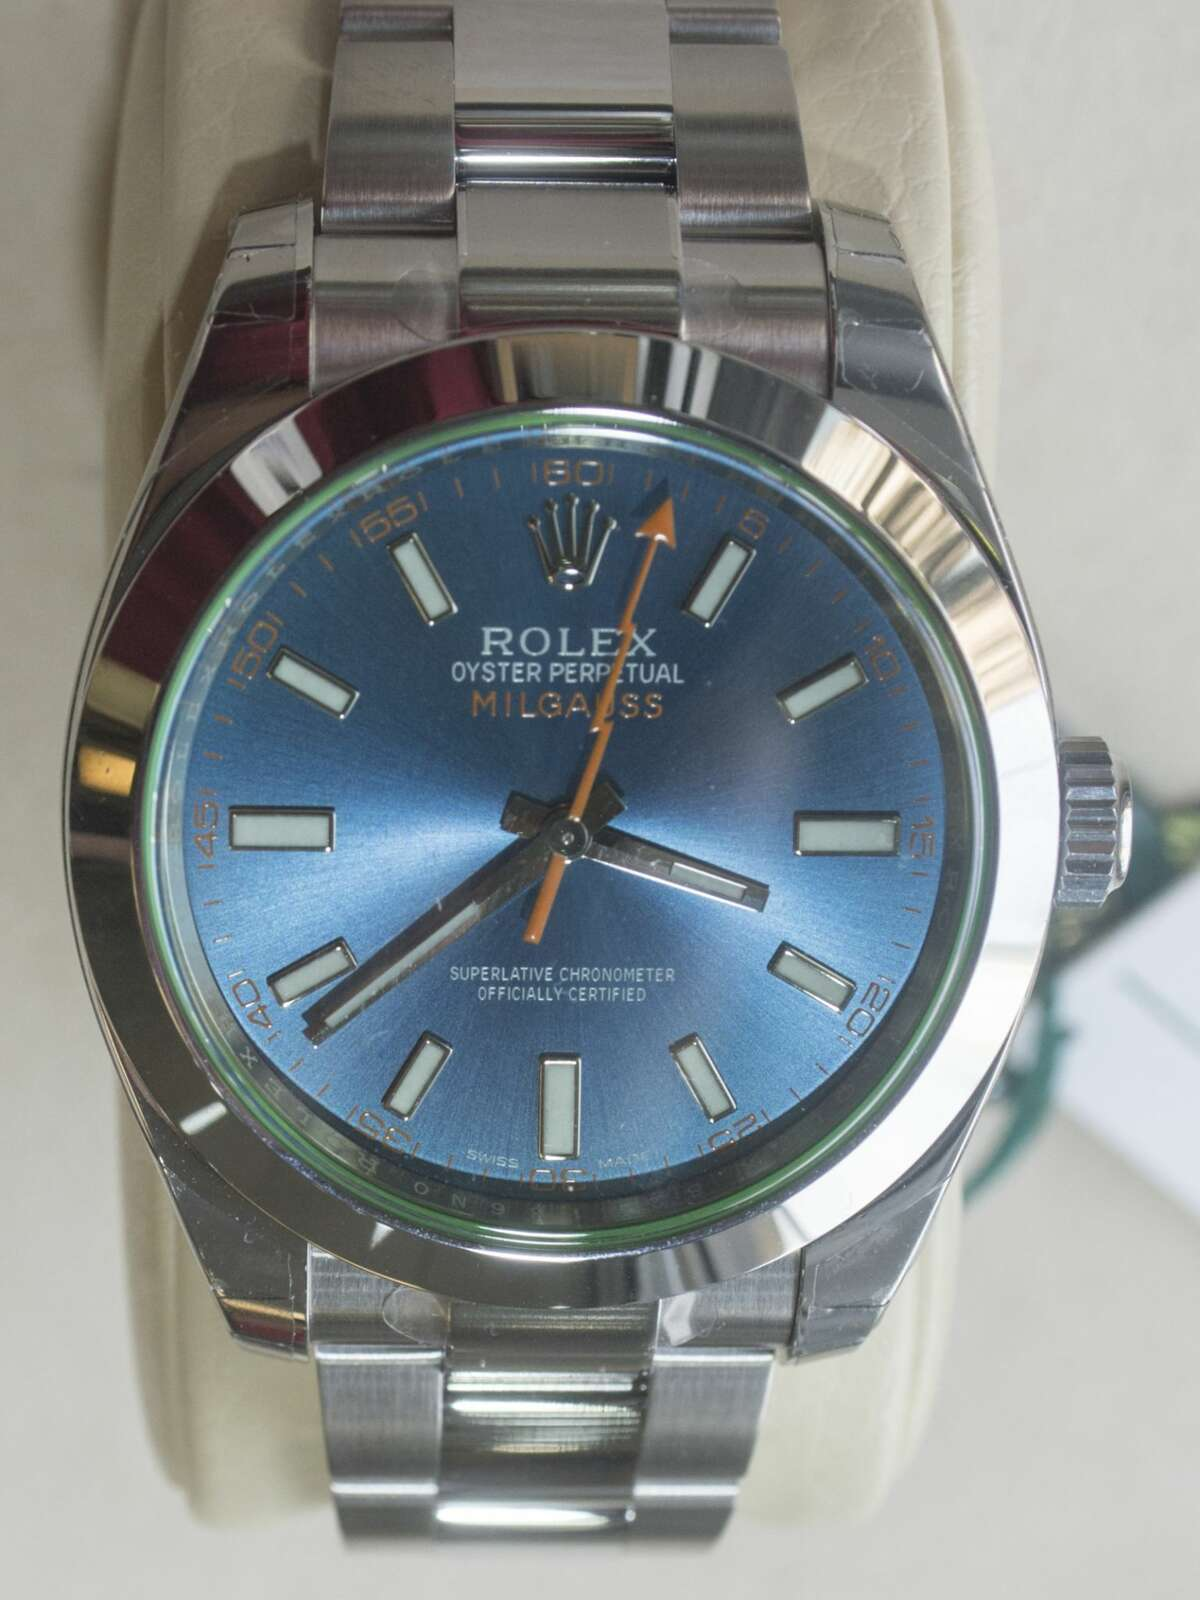 The Rolex Milgauss is easily recognizable by its lightning bolt second hand and its key characteristic is not being affected by strong magnetic fields, making it the choice for scientists and engineers, though it's also popular with people seeking just a bit of flair. This version has a blue dial with green sapphire crystal and a 40 mm case. Photographed Dec. 14, 2016, at Cristiani's Jewelers in Midland. Tim Fischer/Reporter-Telegram